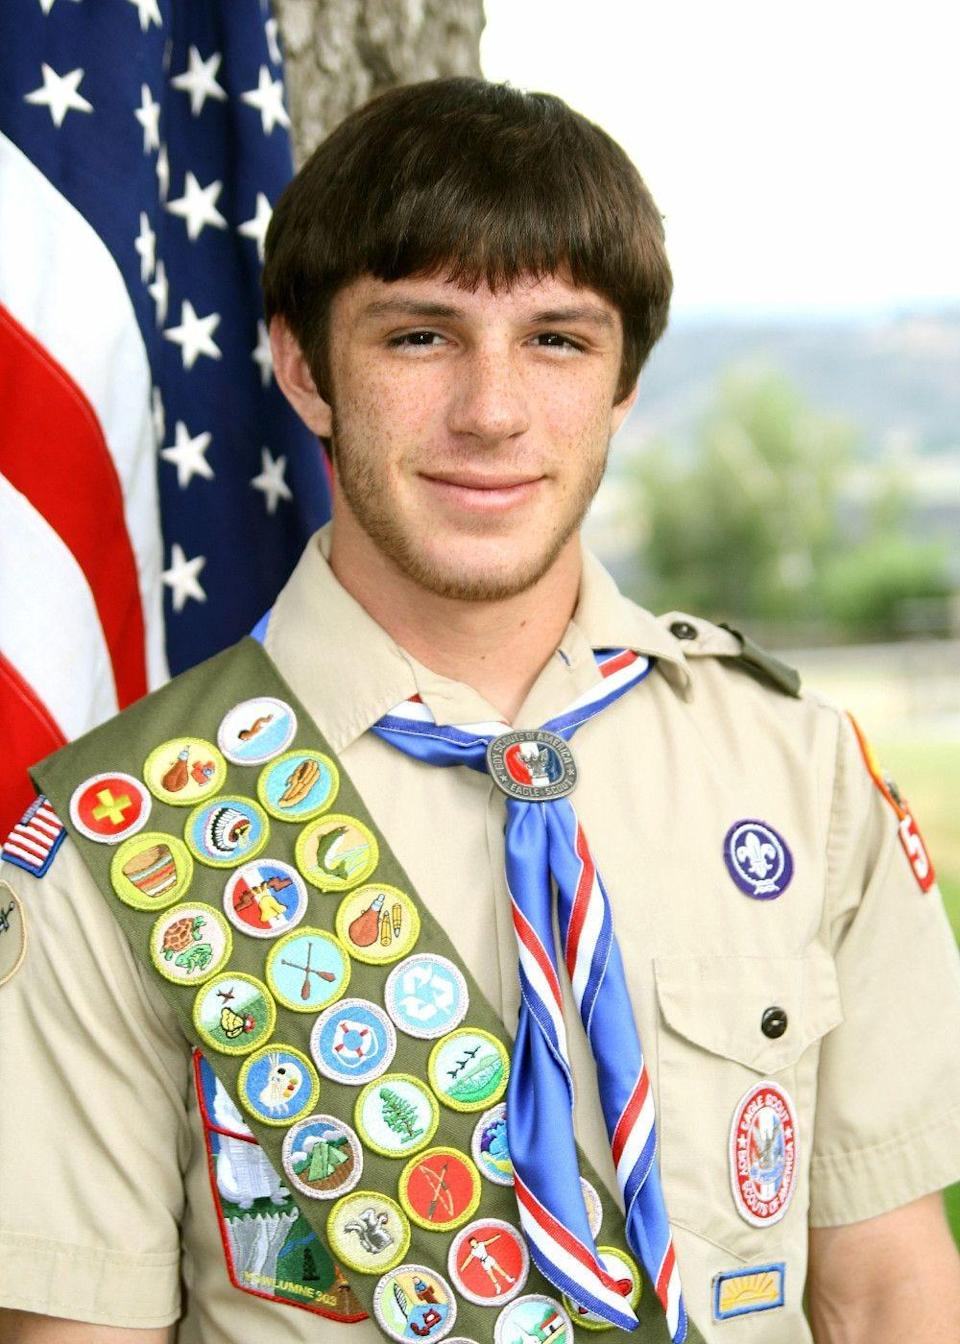 Trevor Reed is an Eagle Scout who served as a U.S. Marine.